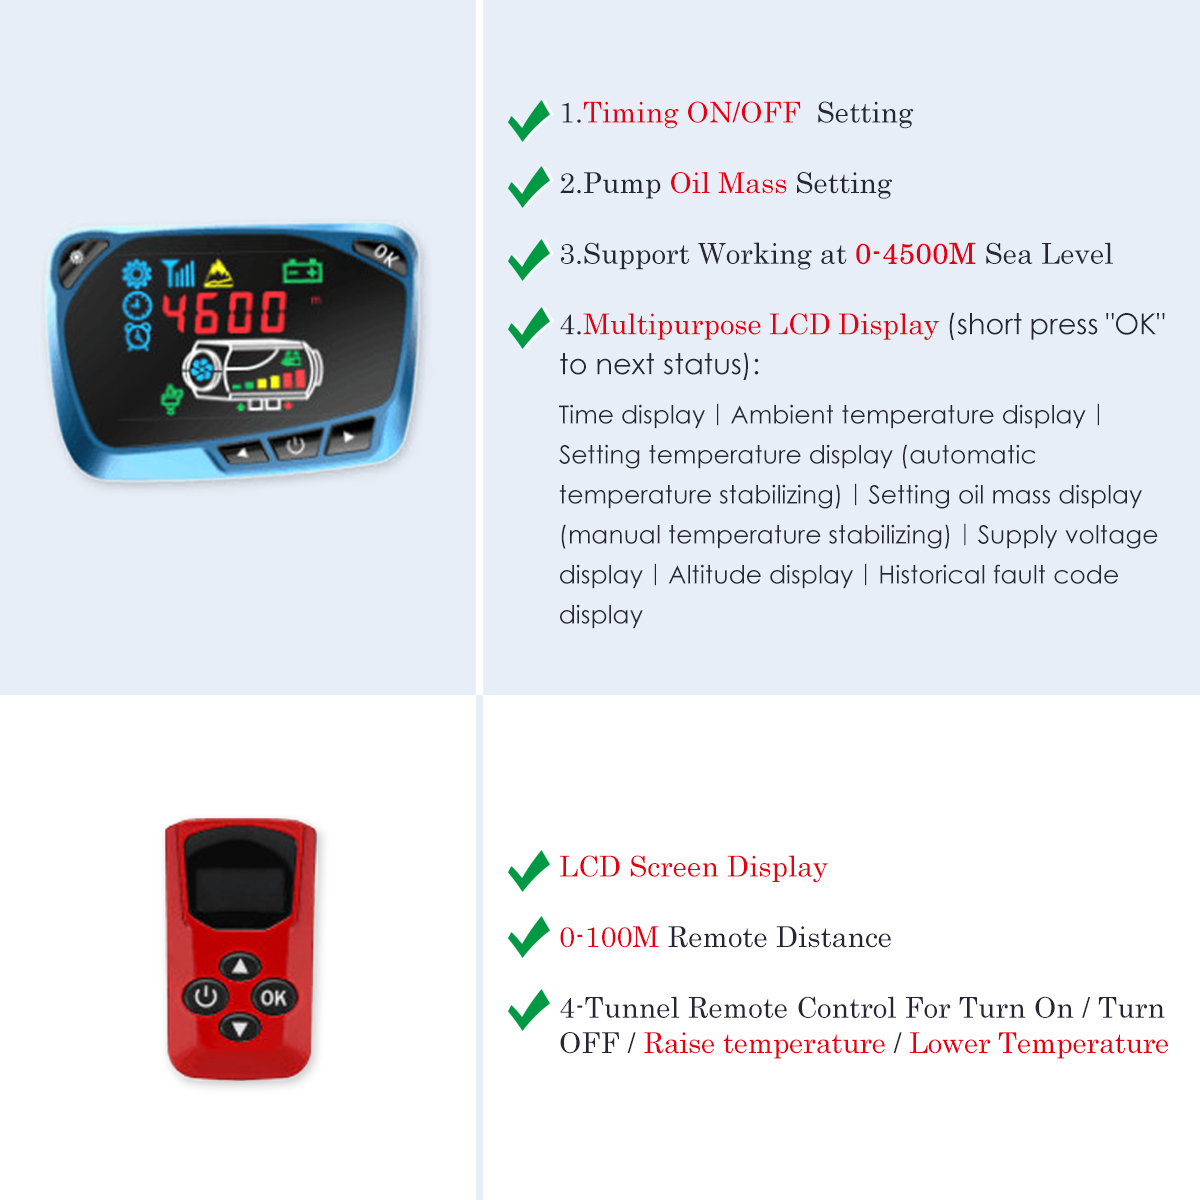 12V 8000W Diesel Air Heater All in 1 LCD Monitor Remote Control for Truck Motorhome Boat Trailer